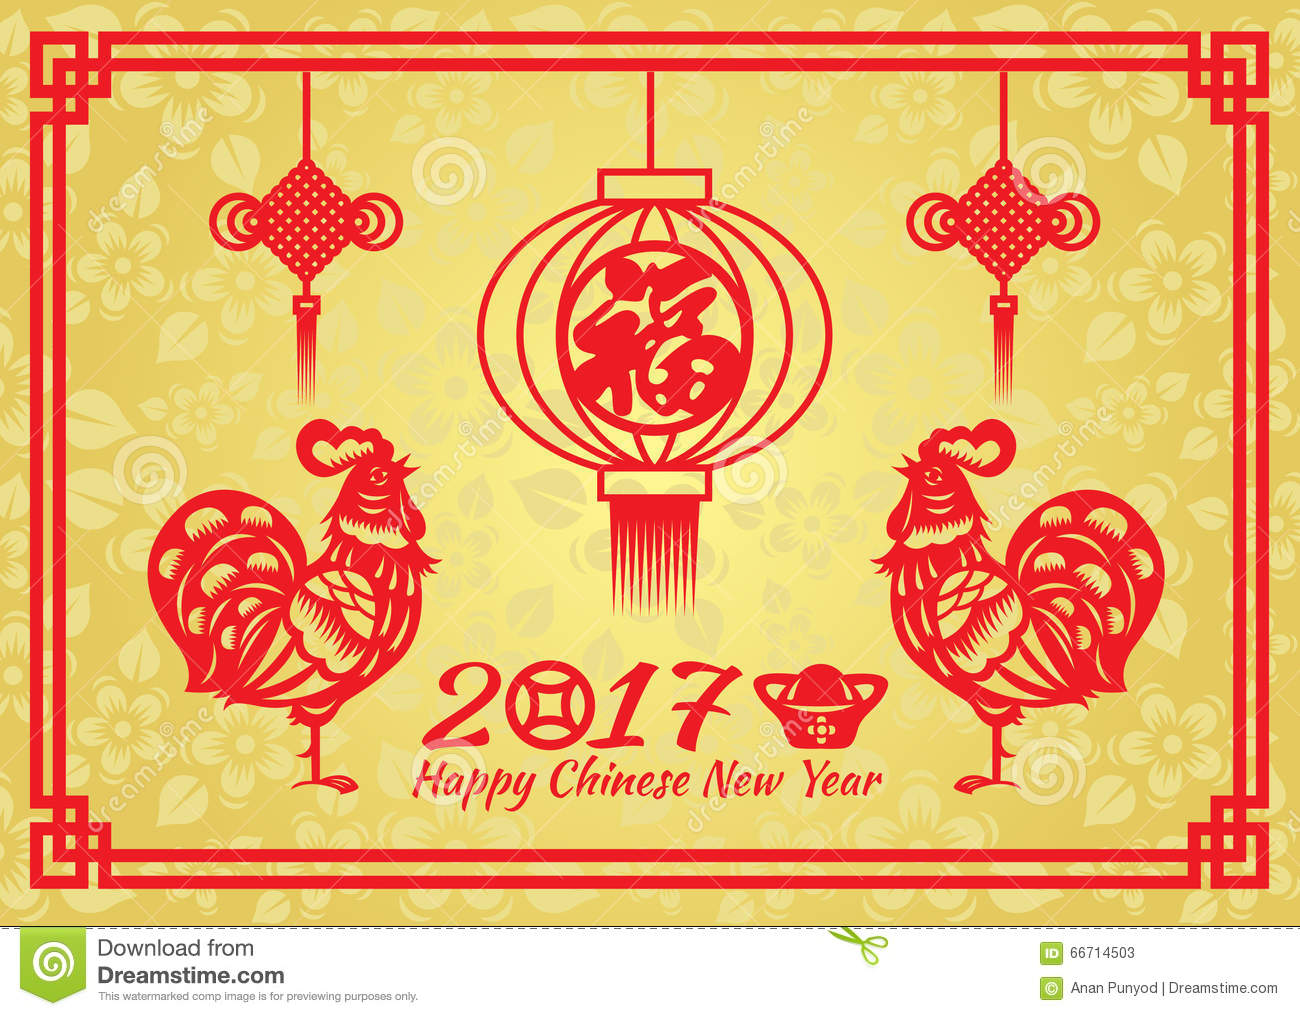 happy chinese new year 2017 card is chinese word mean happiness in lanterns knot money and chicken red paper cut - When Is Chinese New Year 2017